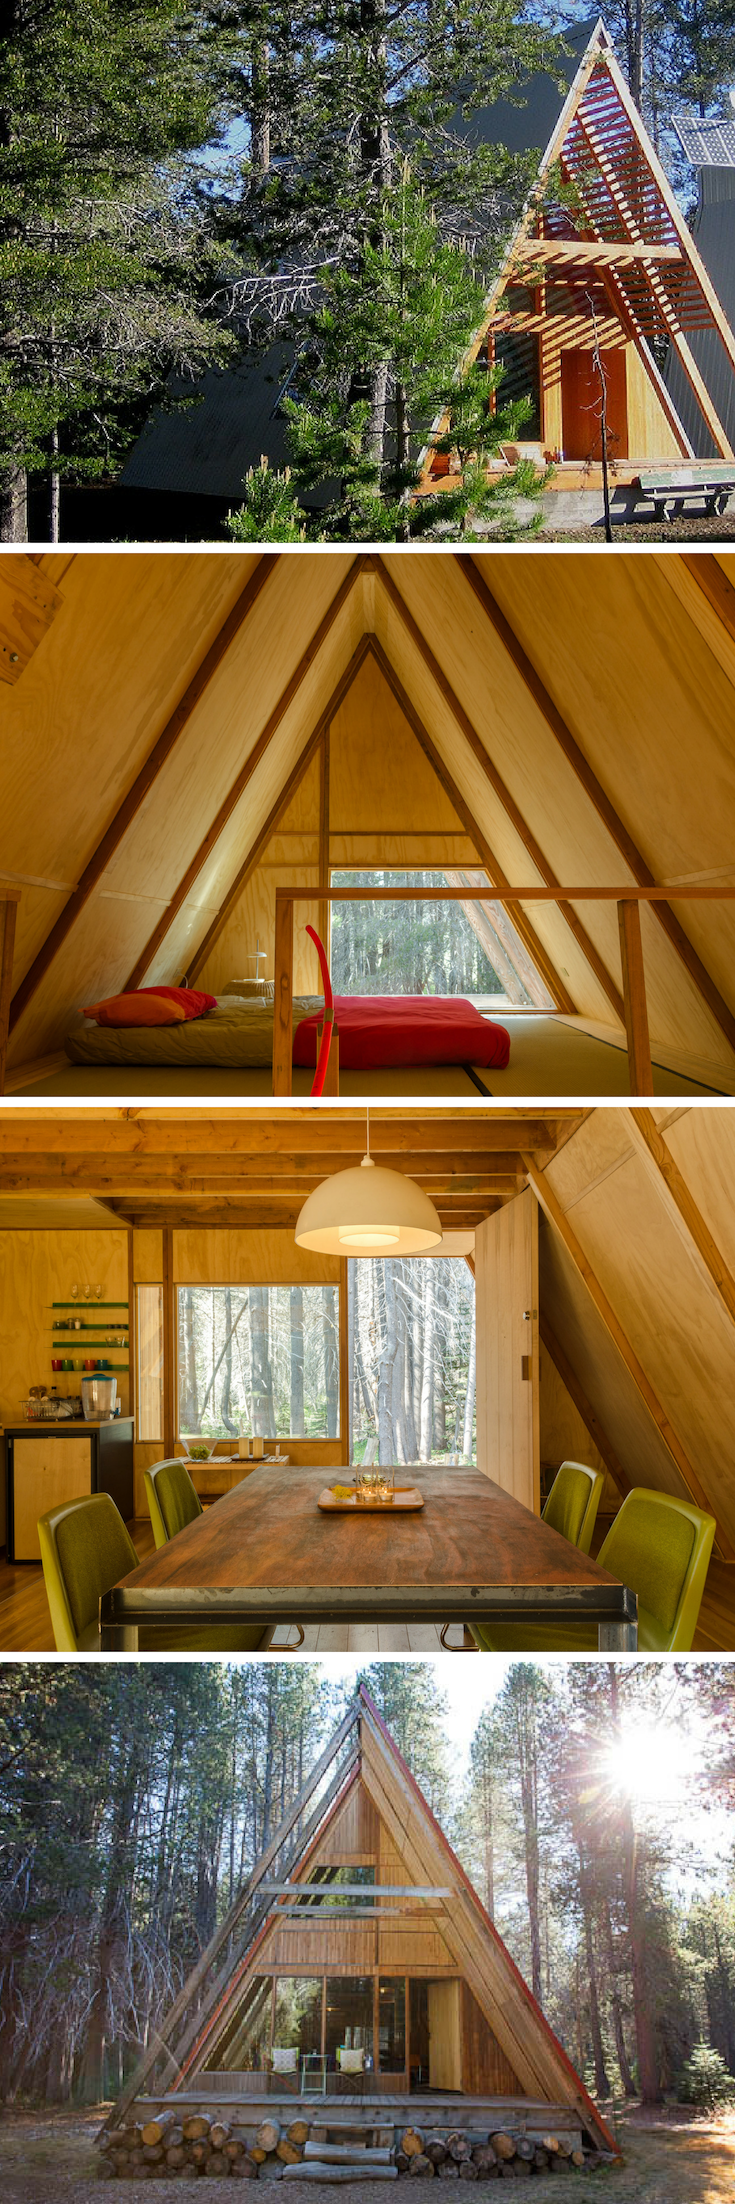 AFrame Cabin Rental near Yosemite National Park